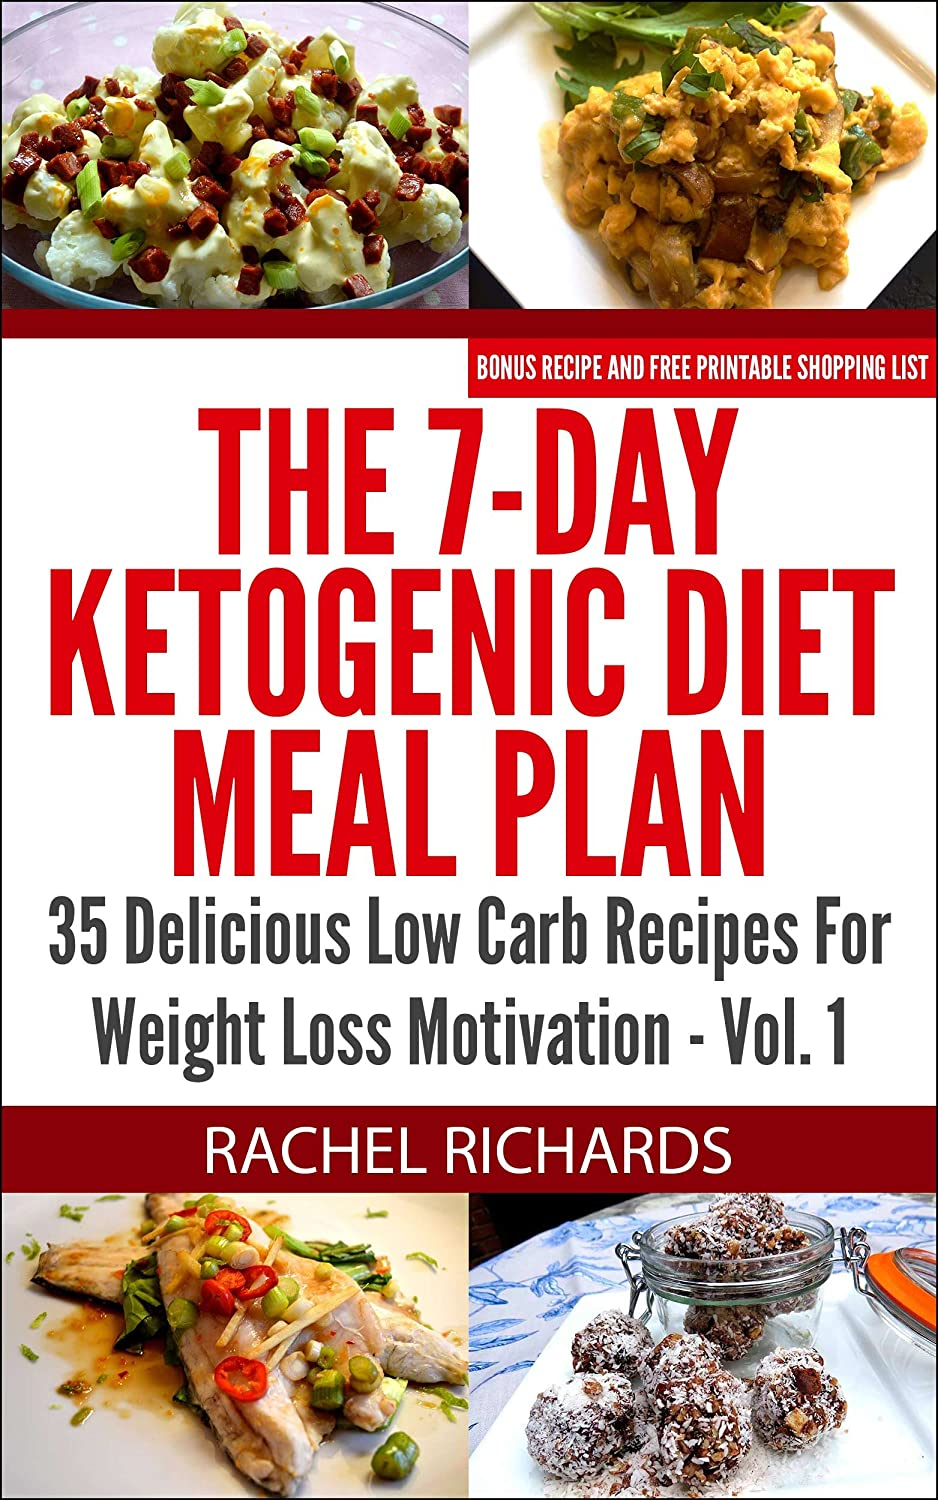 http://www.amazon.com/7-Day-Ketogenic-Diet-Meal-Plan-ebook/dp/B00JOS4XV6/ref=sr_1_25?s=digital-text&ie=UTF8&qid=1416246760&sr=1-25&keywords=free+kindle+books